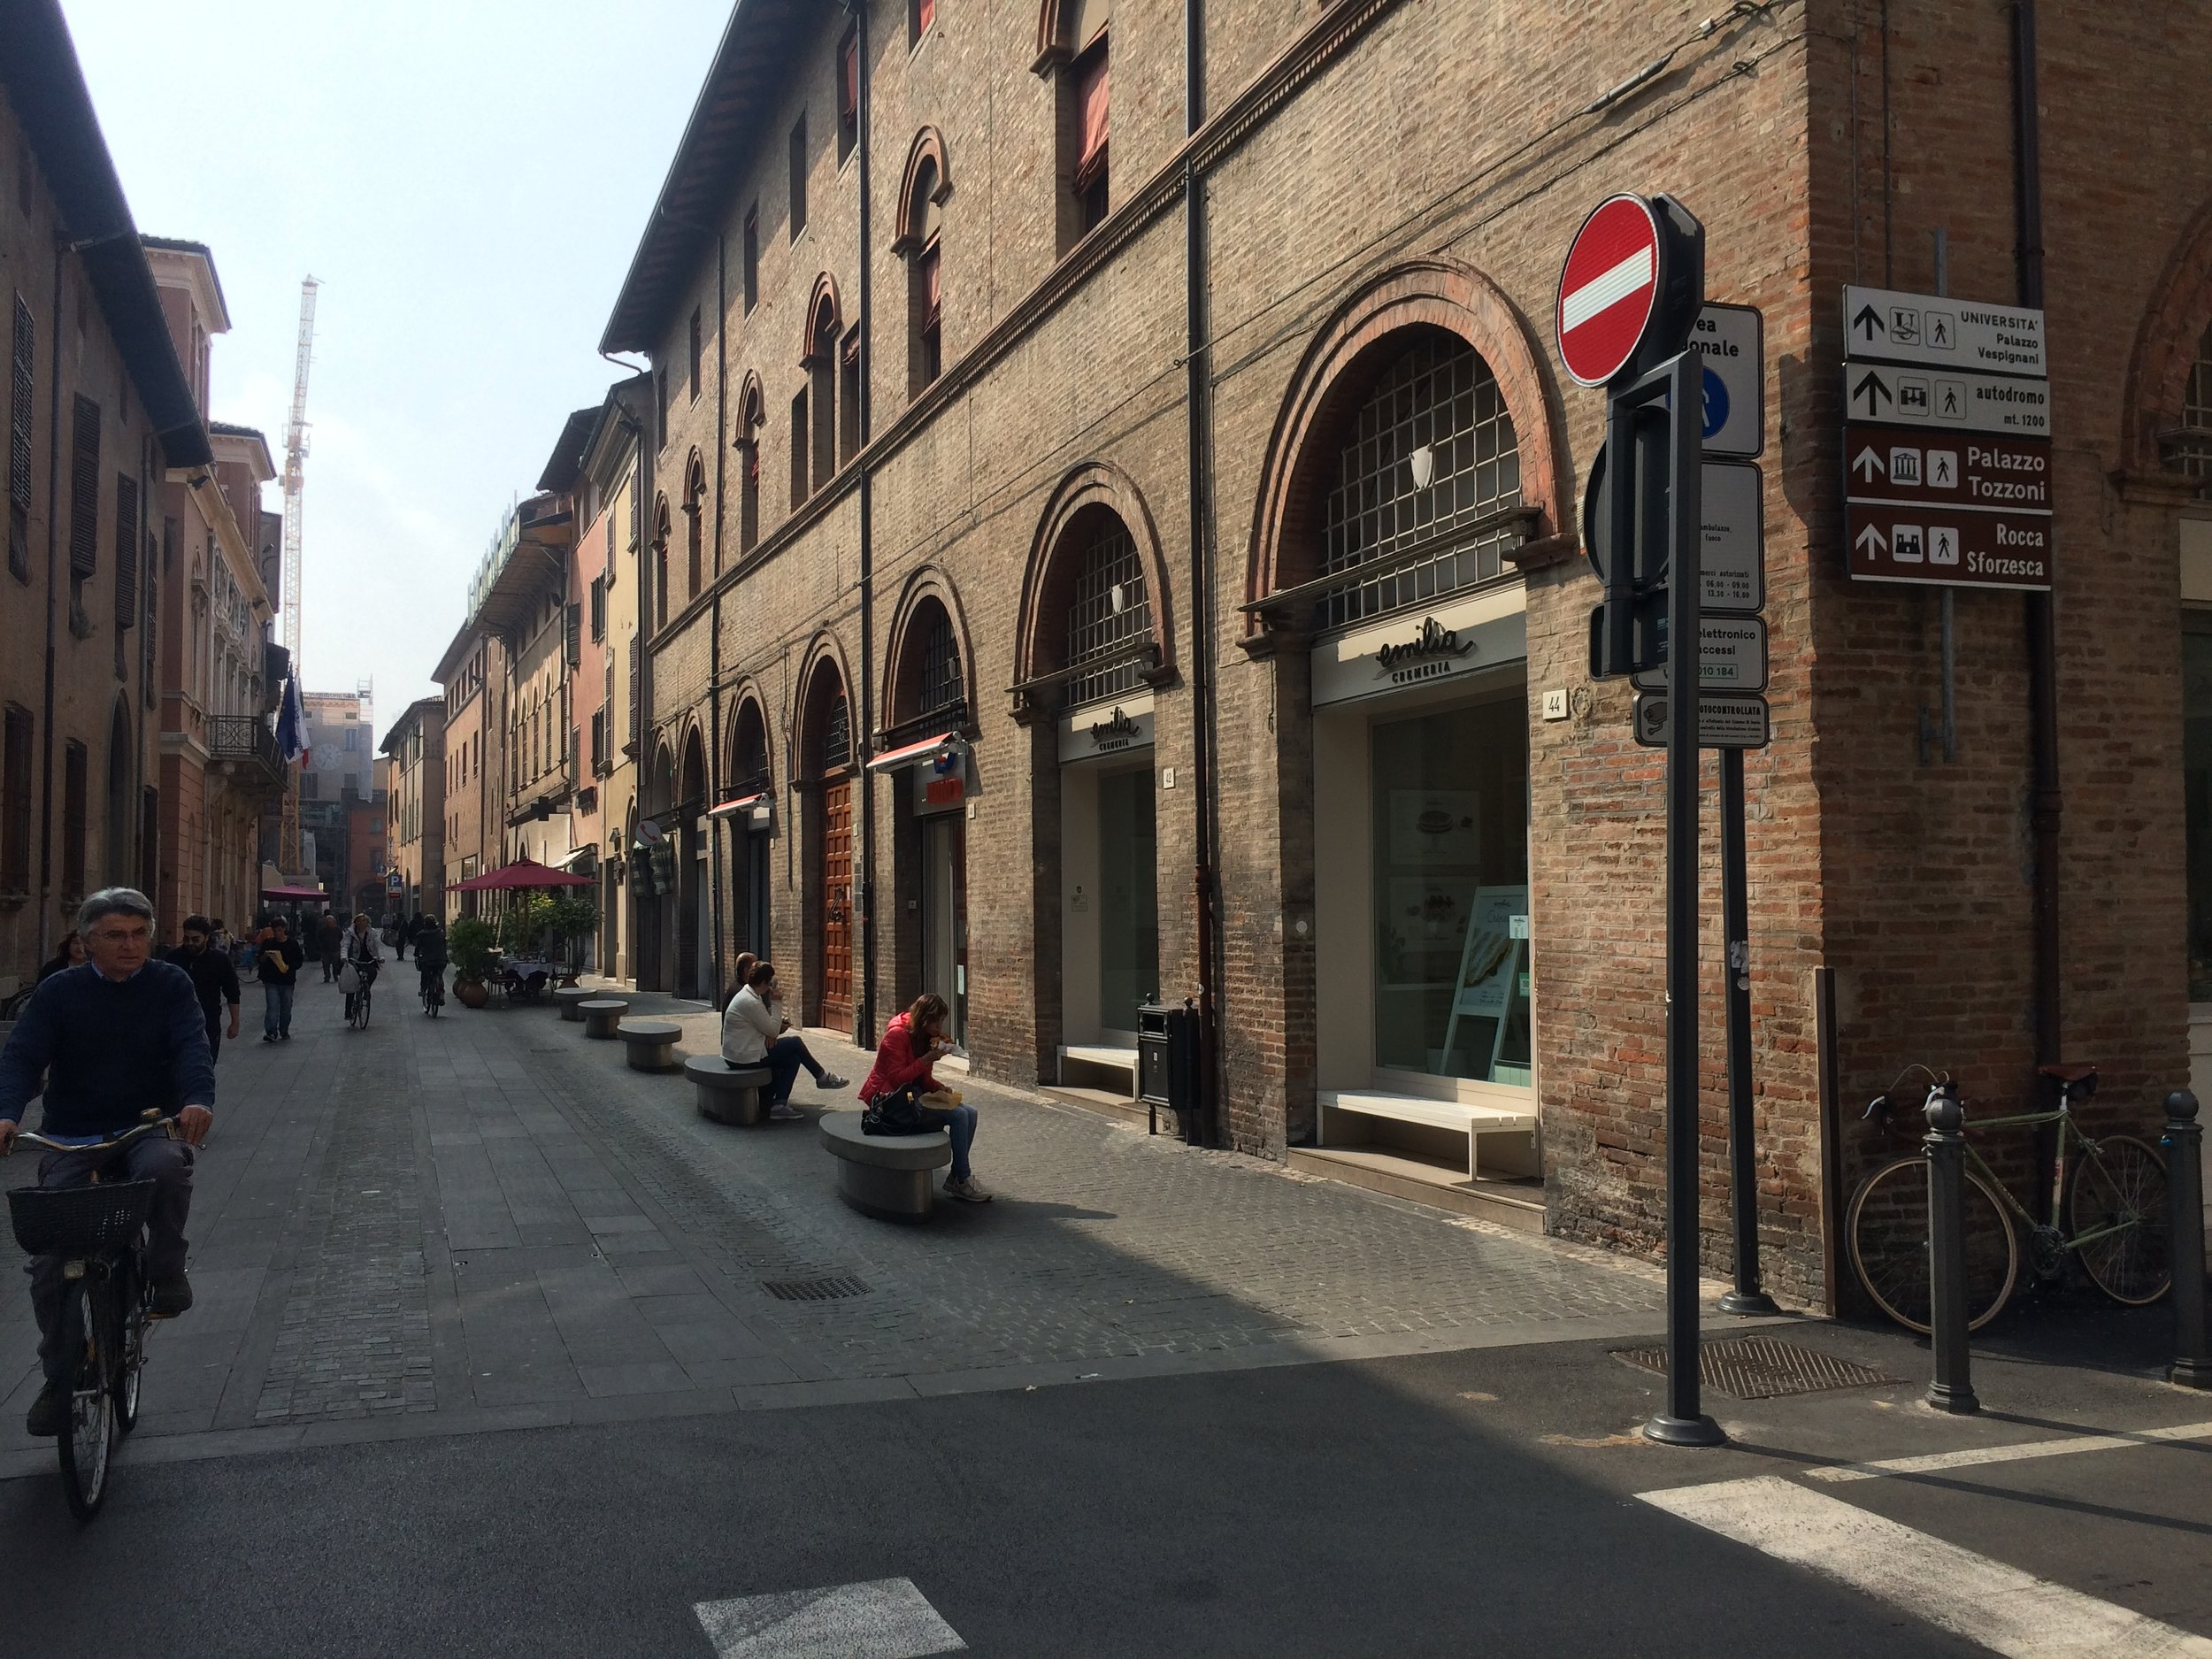 Old town of Imola